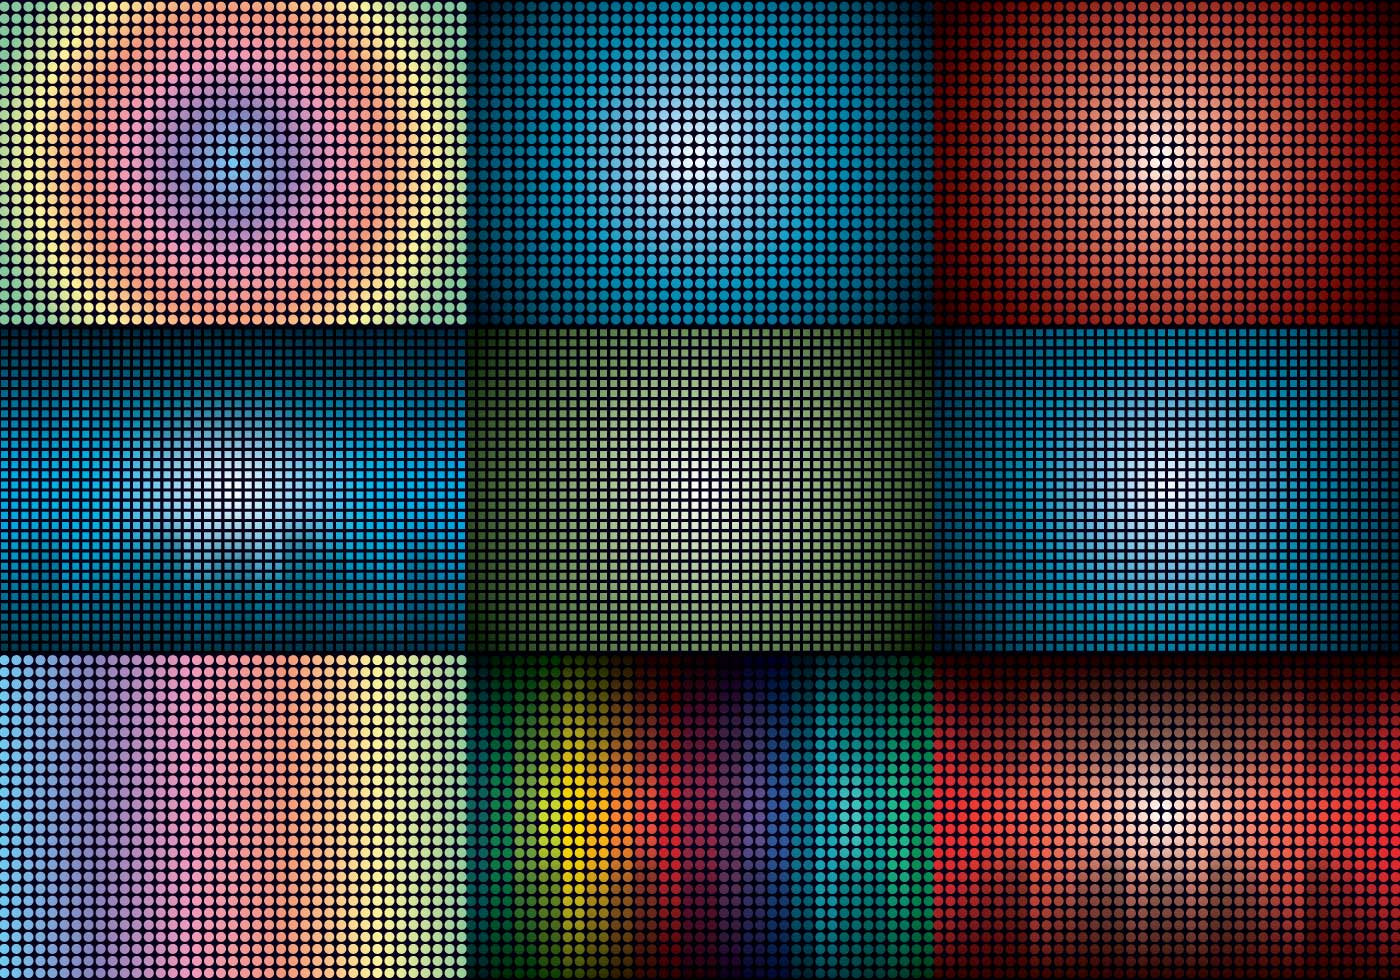 LED Screen Background  Download Free Vector Art Stock